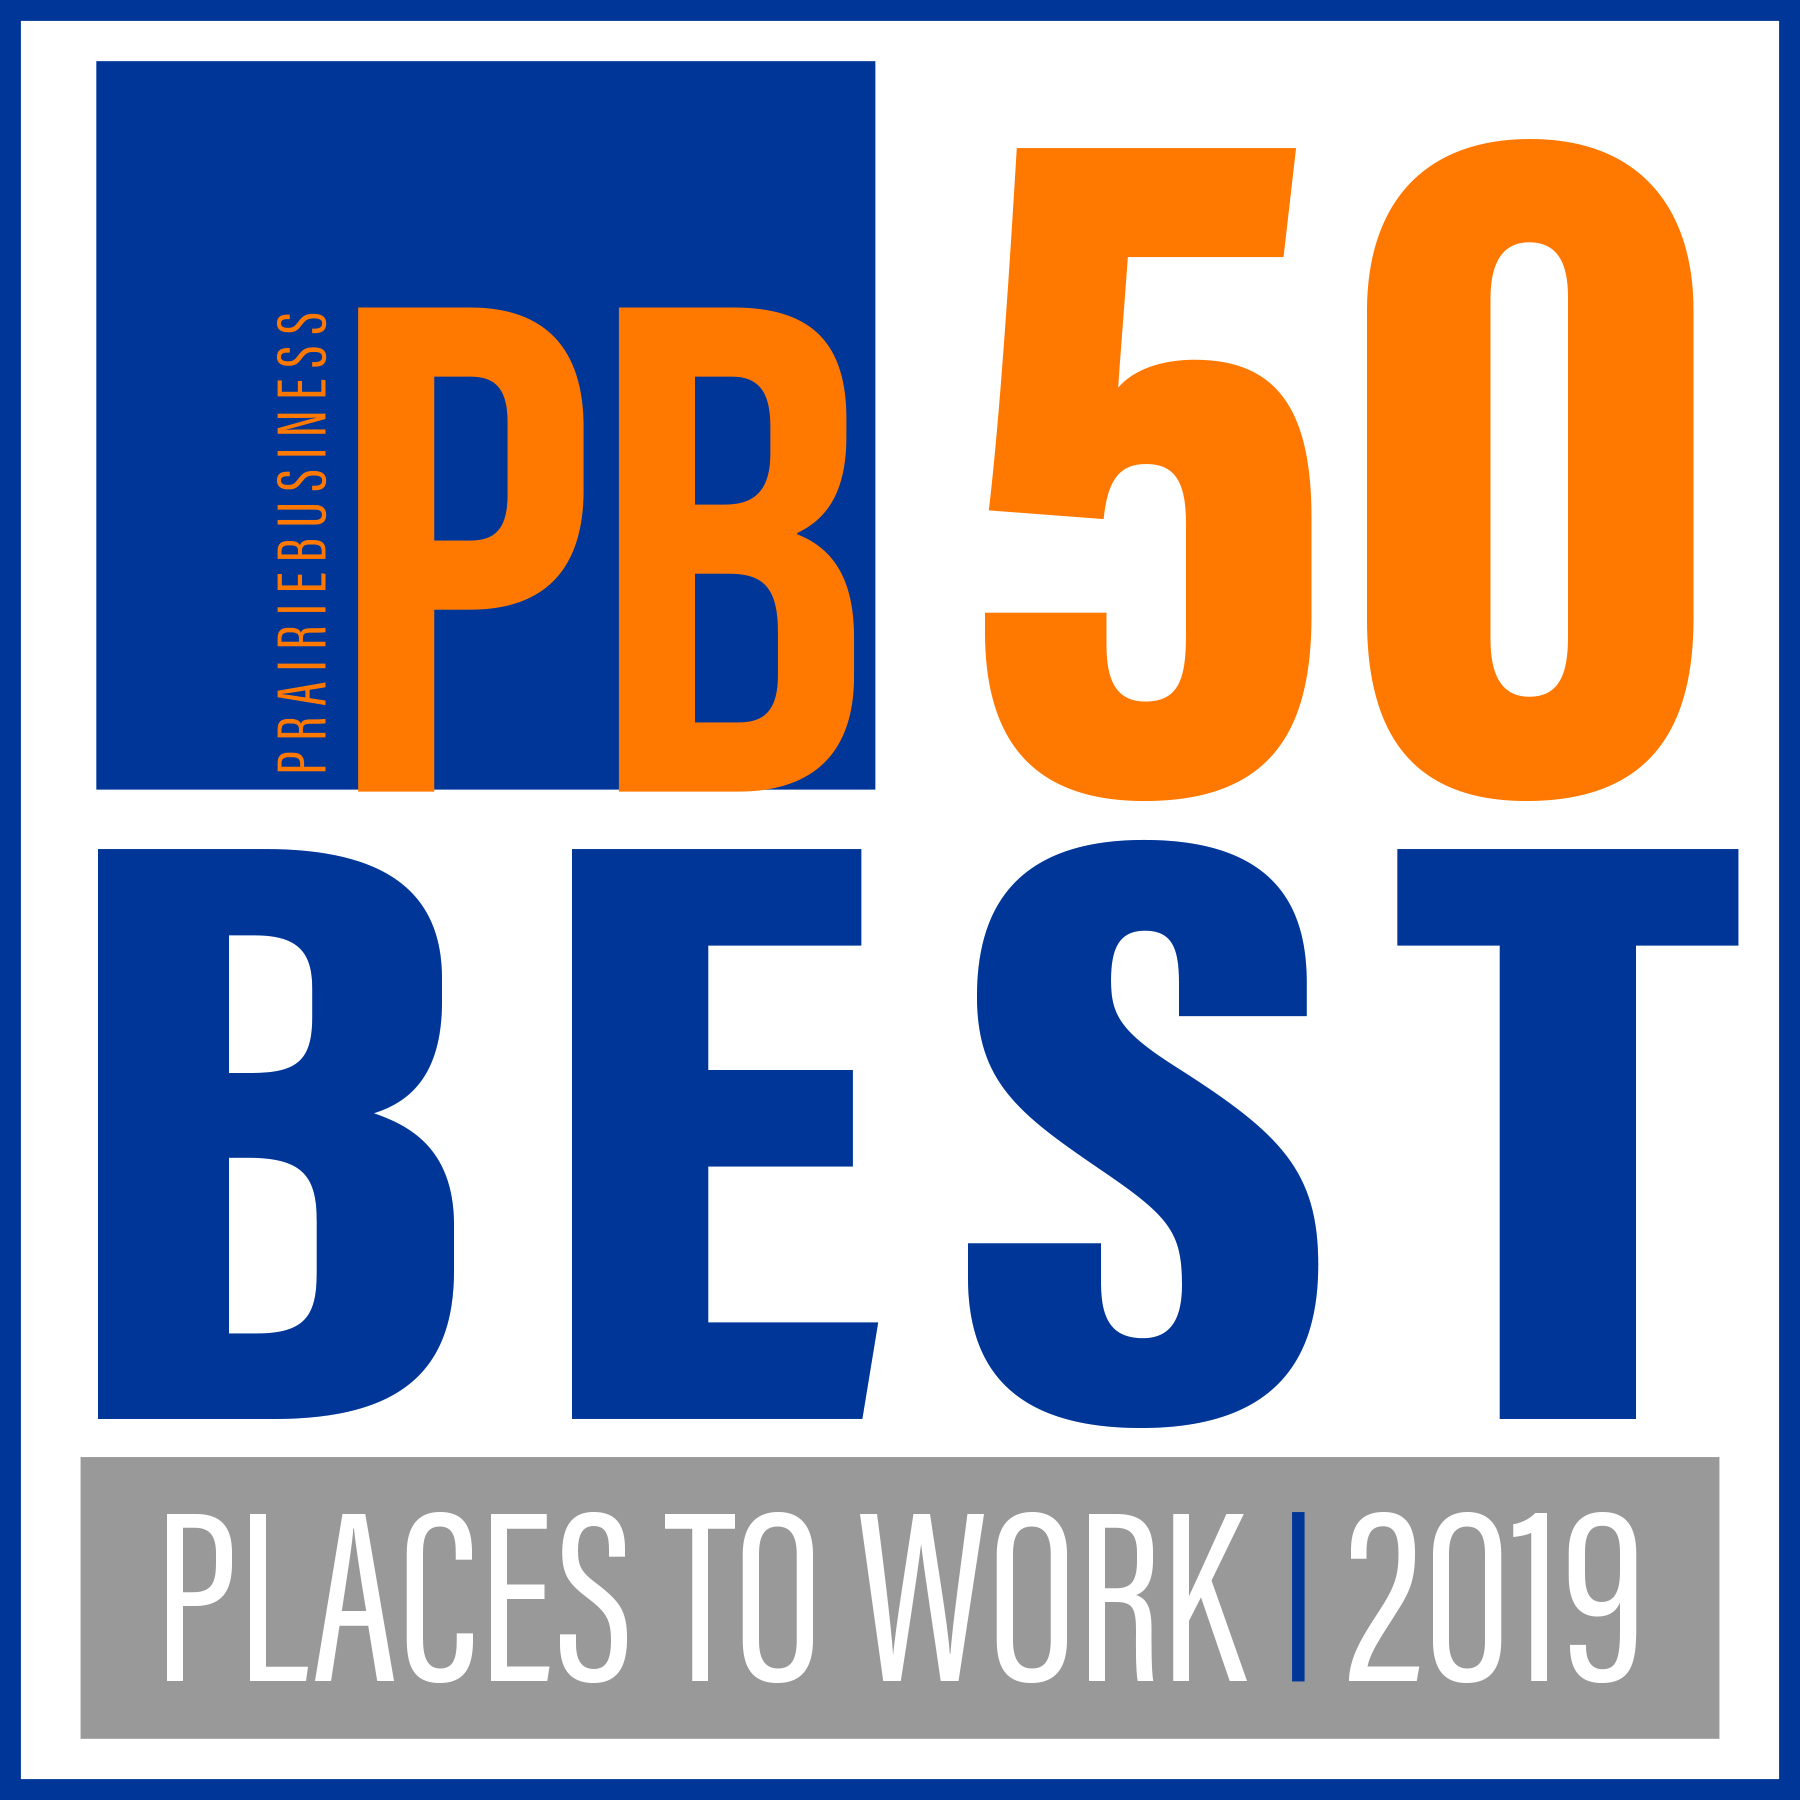 Architecture Incorporated Named one of the 50 Best Places to Work